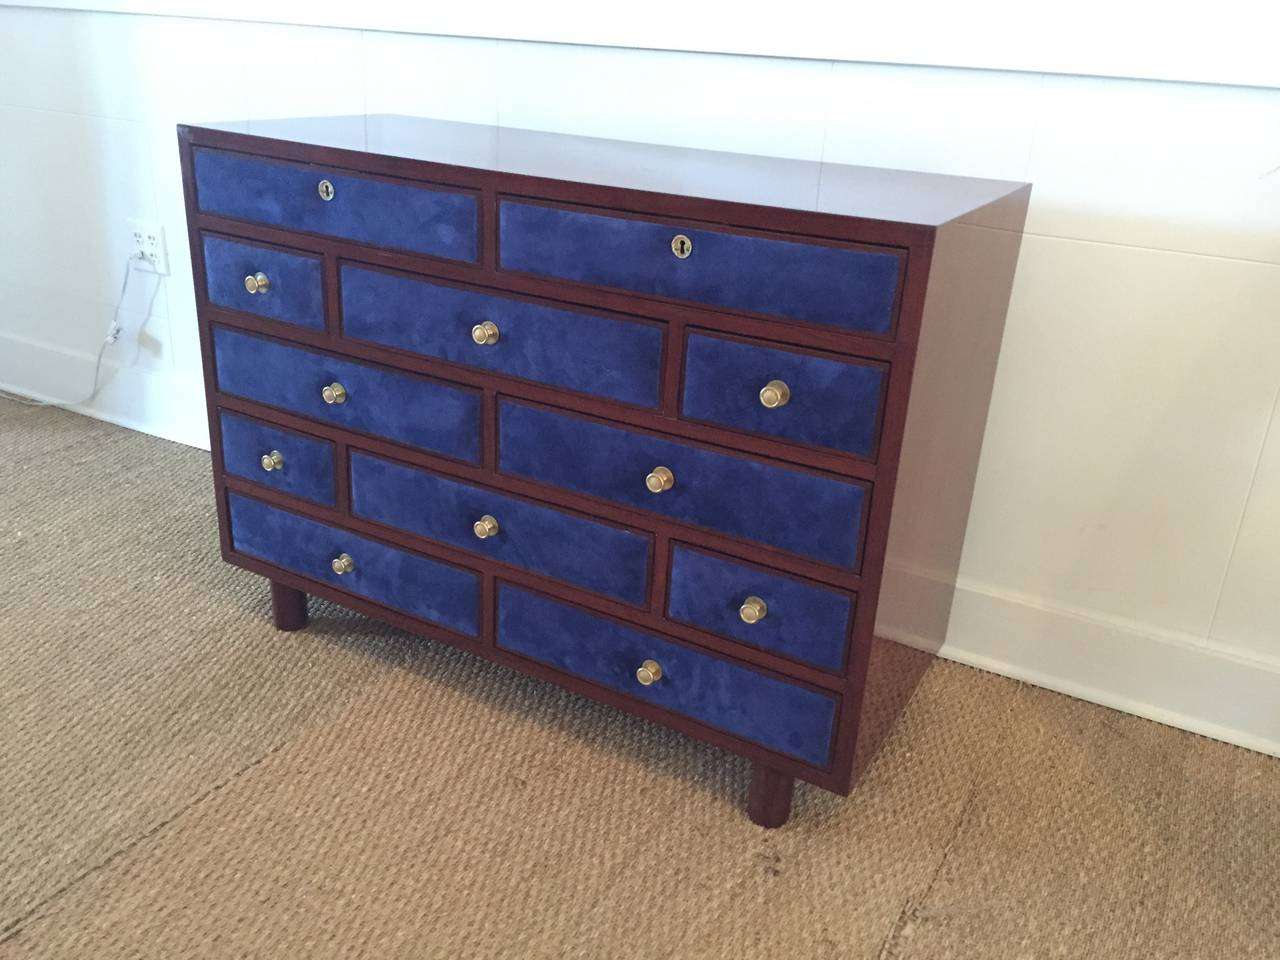 Rare 12 drawers clad with vibrant and rich Midnight Blue suede, -newly replaced Suede - all original hardware (gold-plated pulls). Polished mahogany base. Just breathtaking.